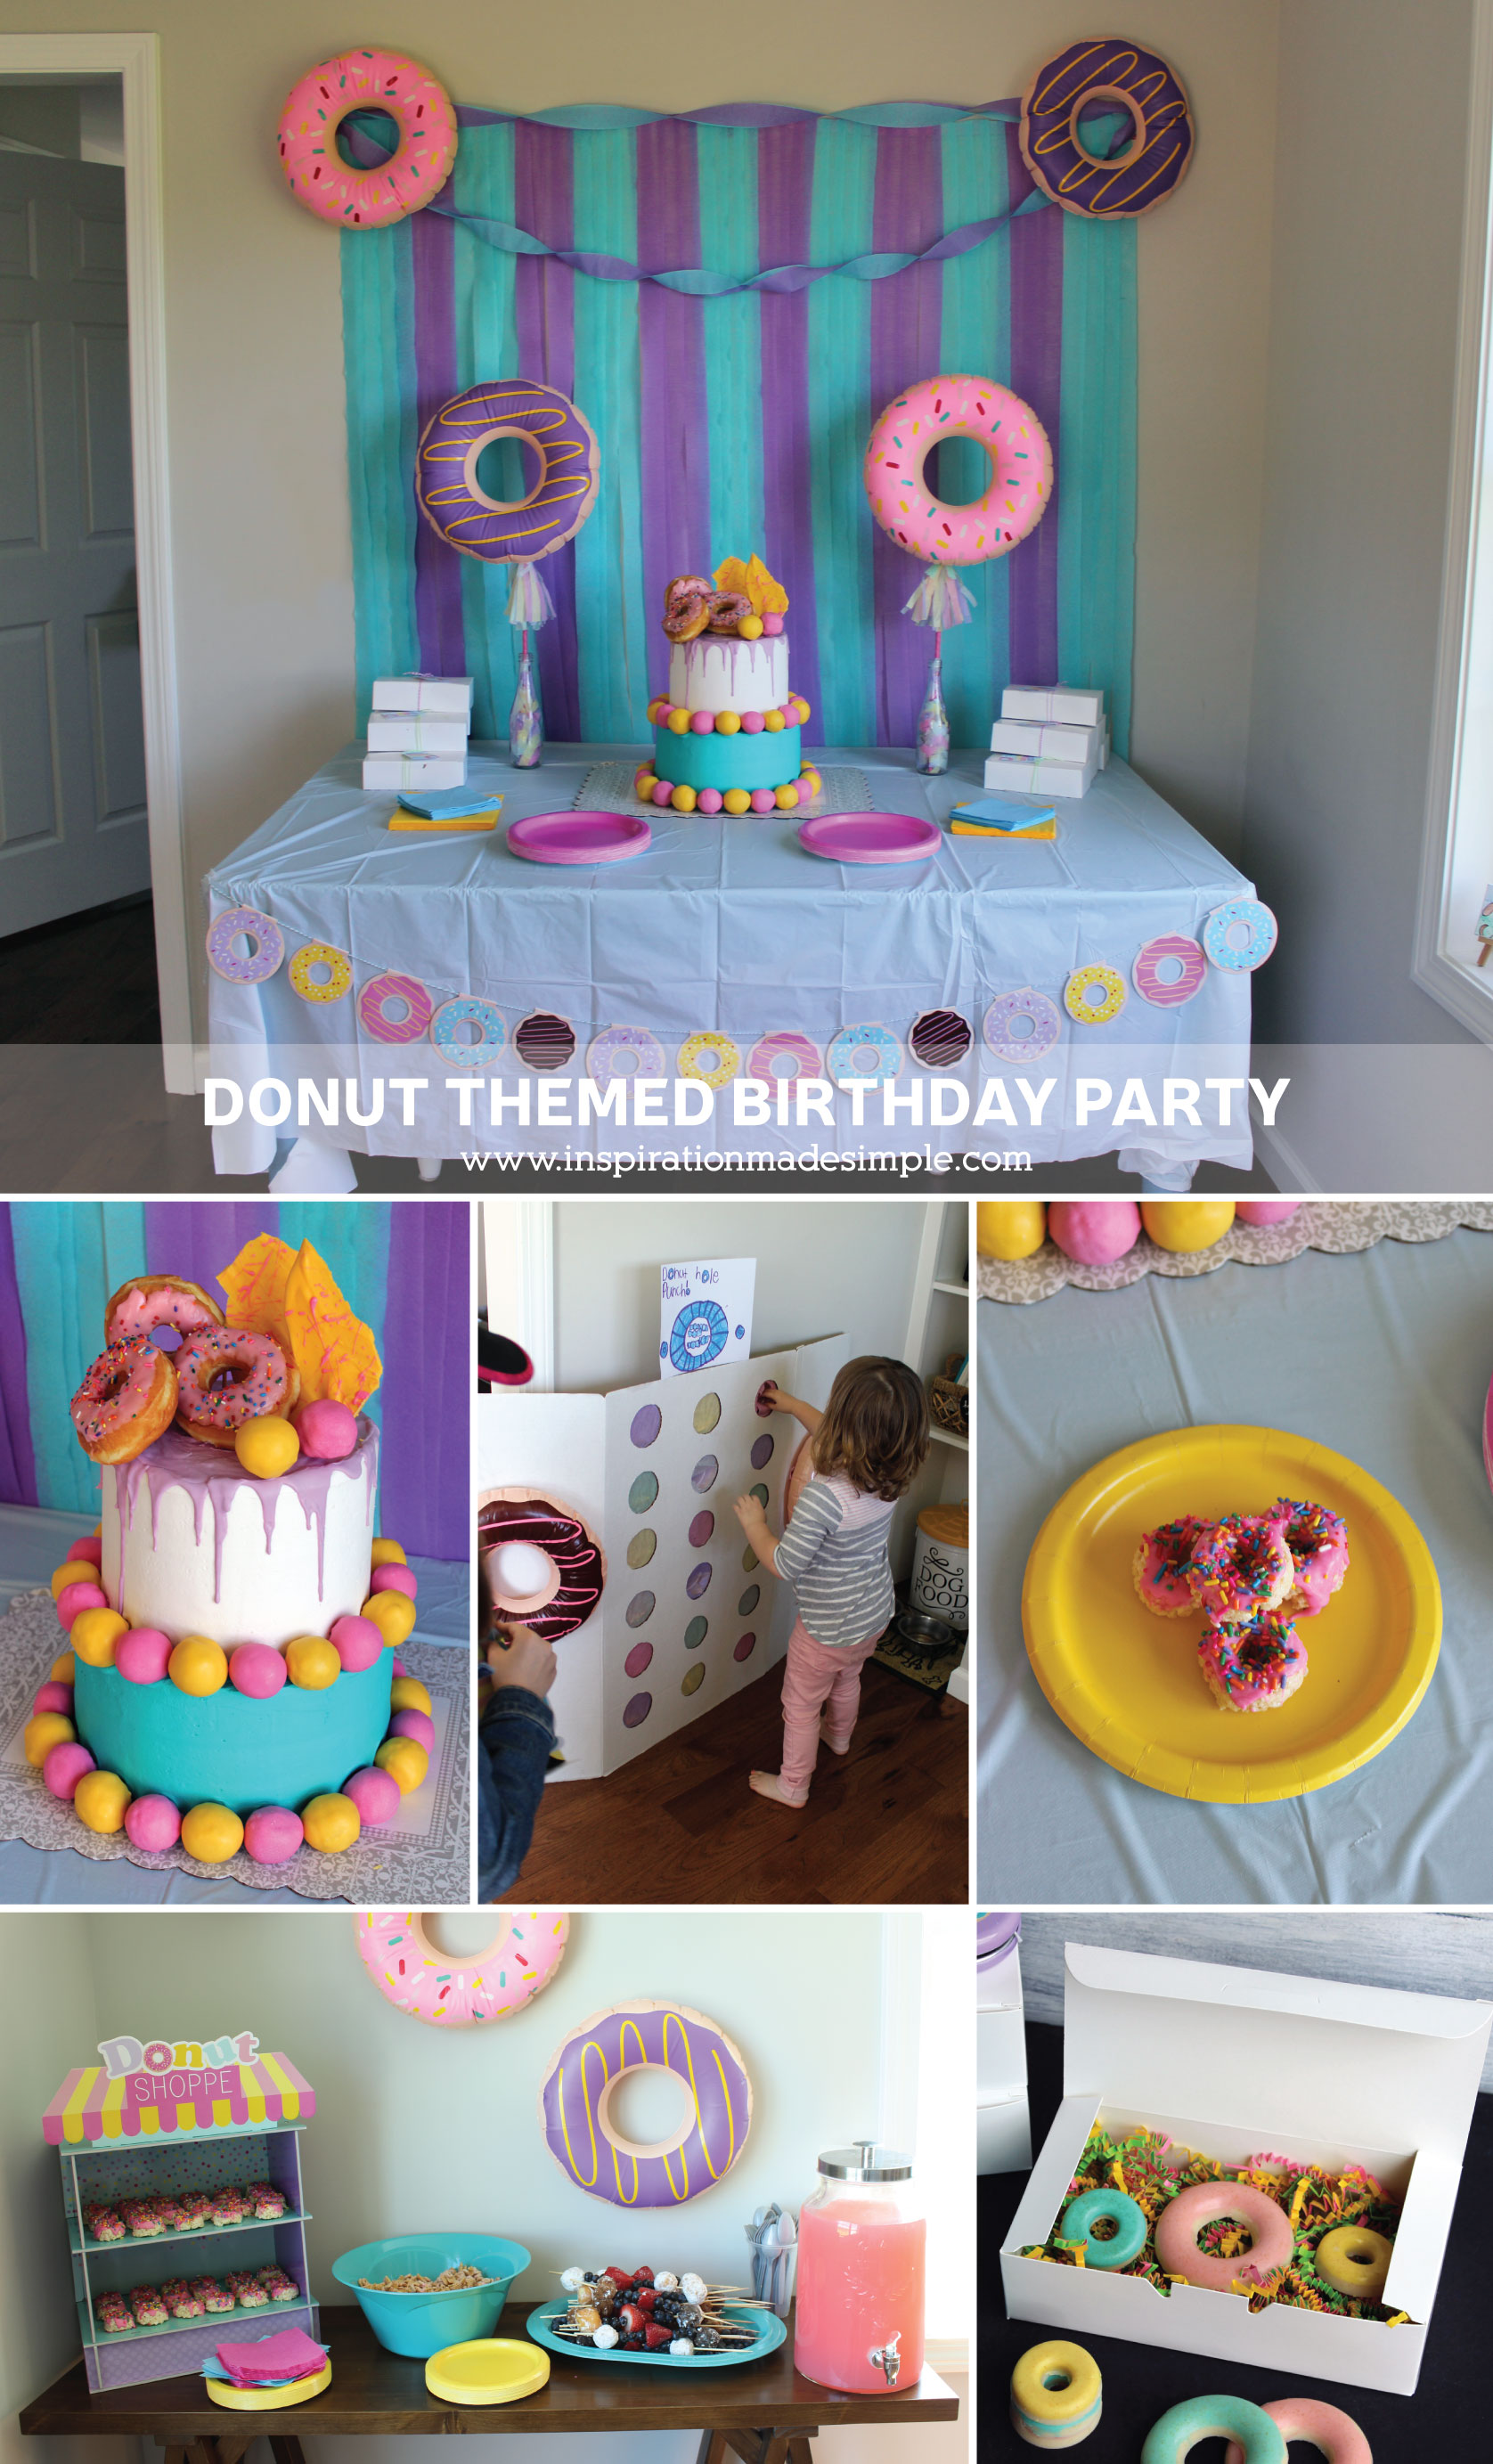 Simple DIY Donut Themed Birthday Party